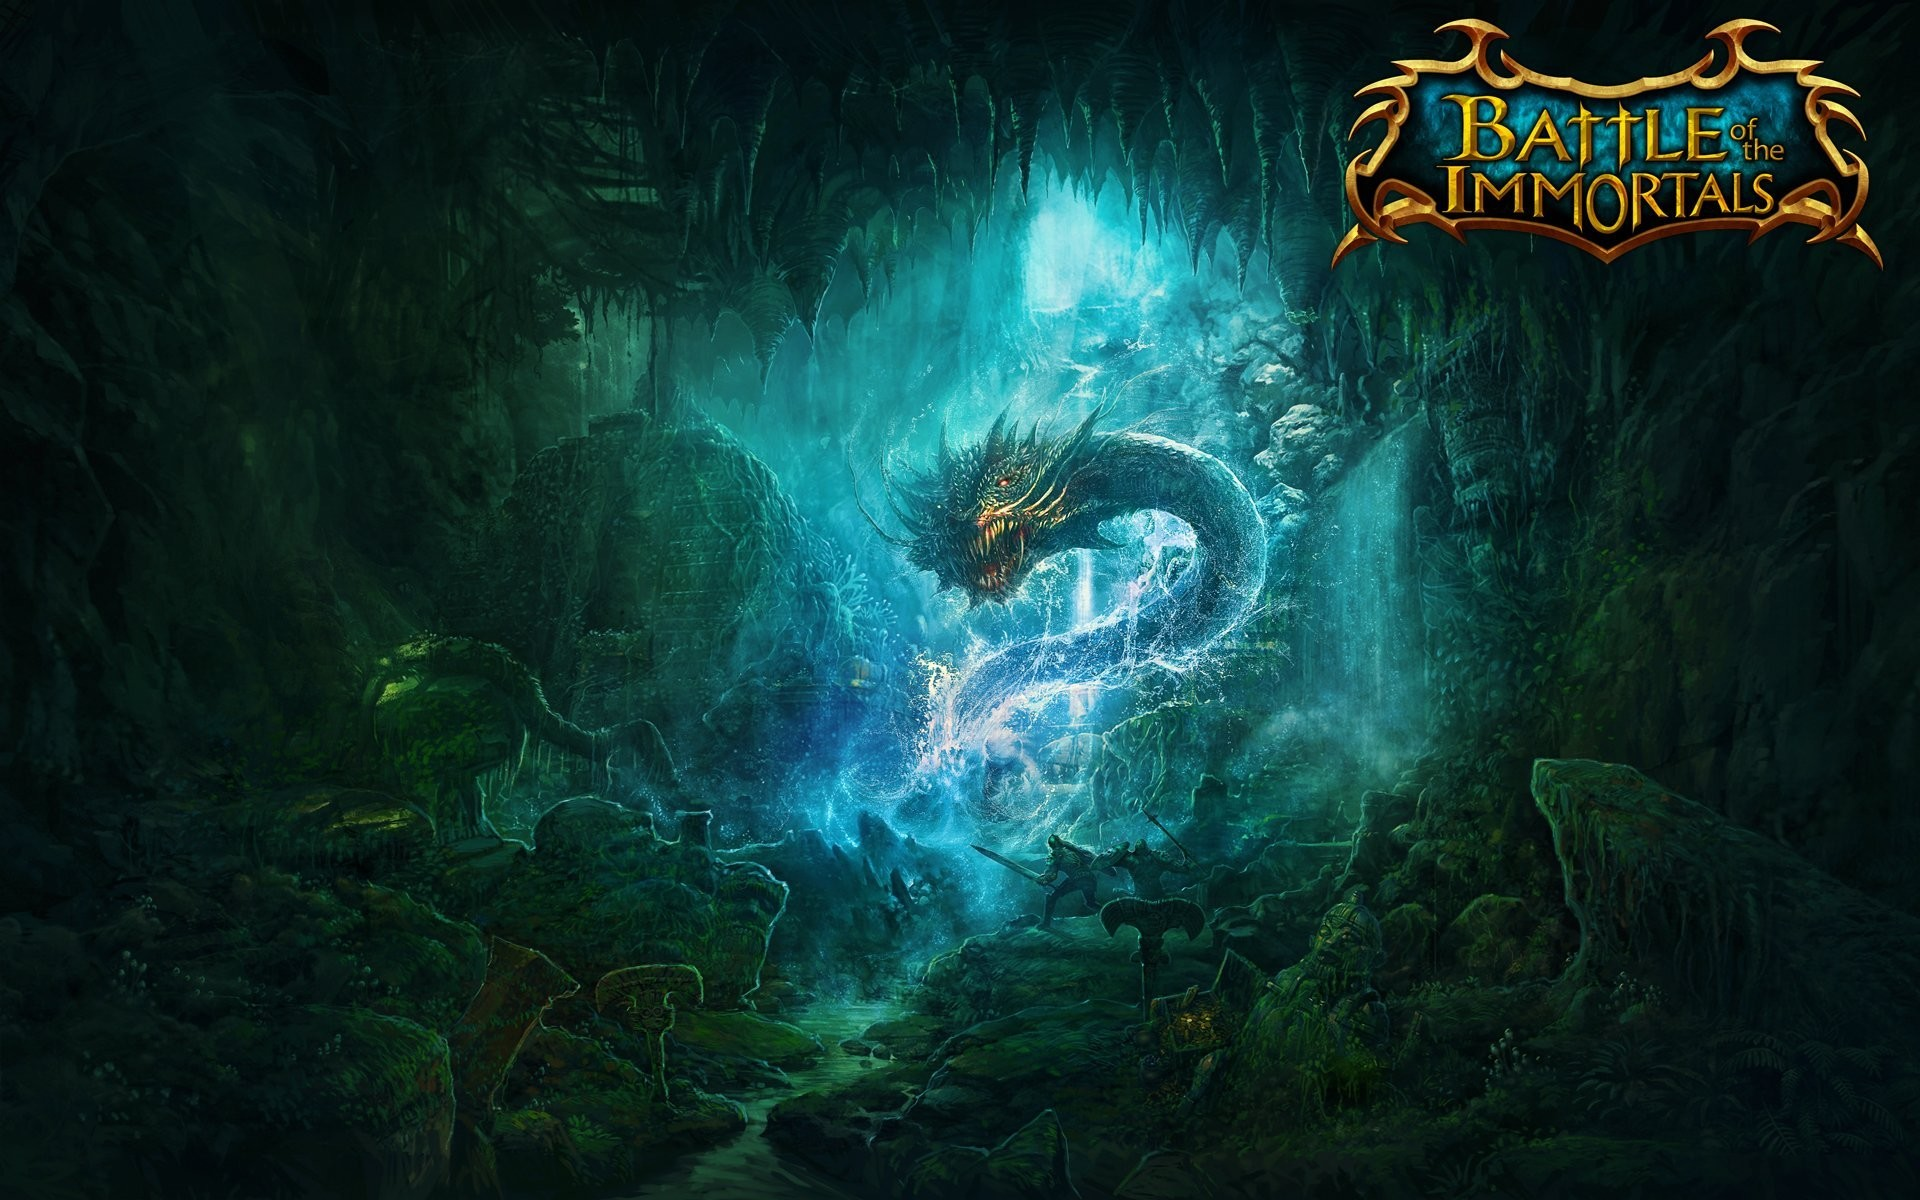 battle of the immortals game wallpapers battle immortal cave knights dragon  skeletons .boy swords